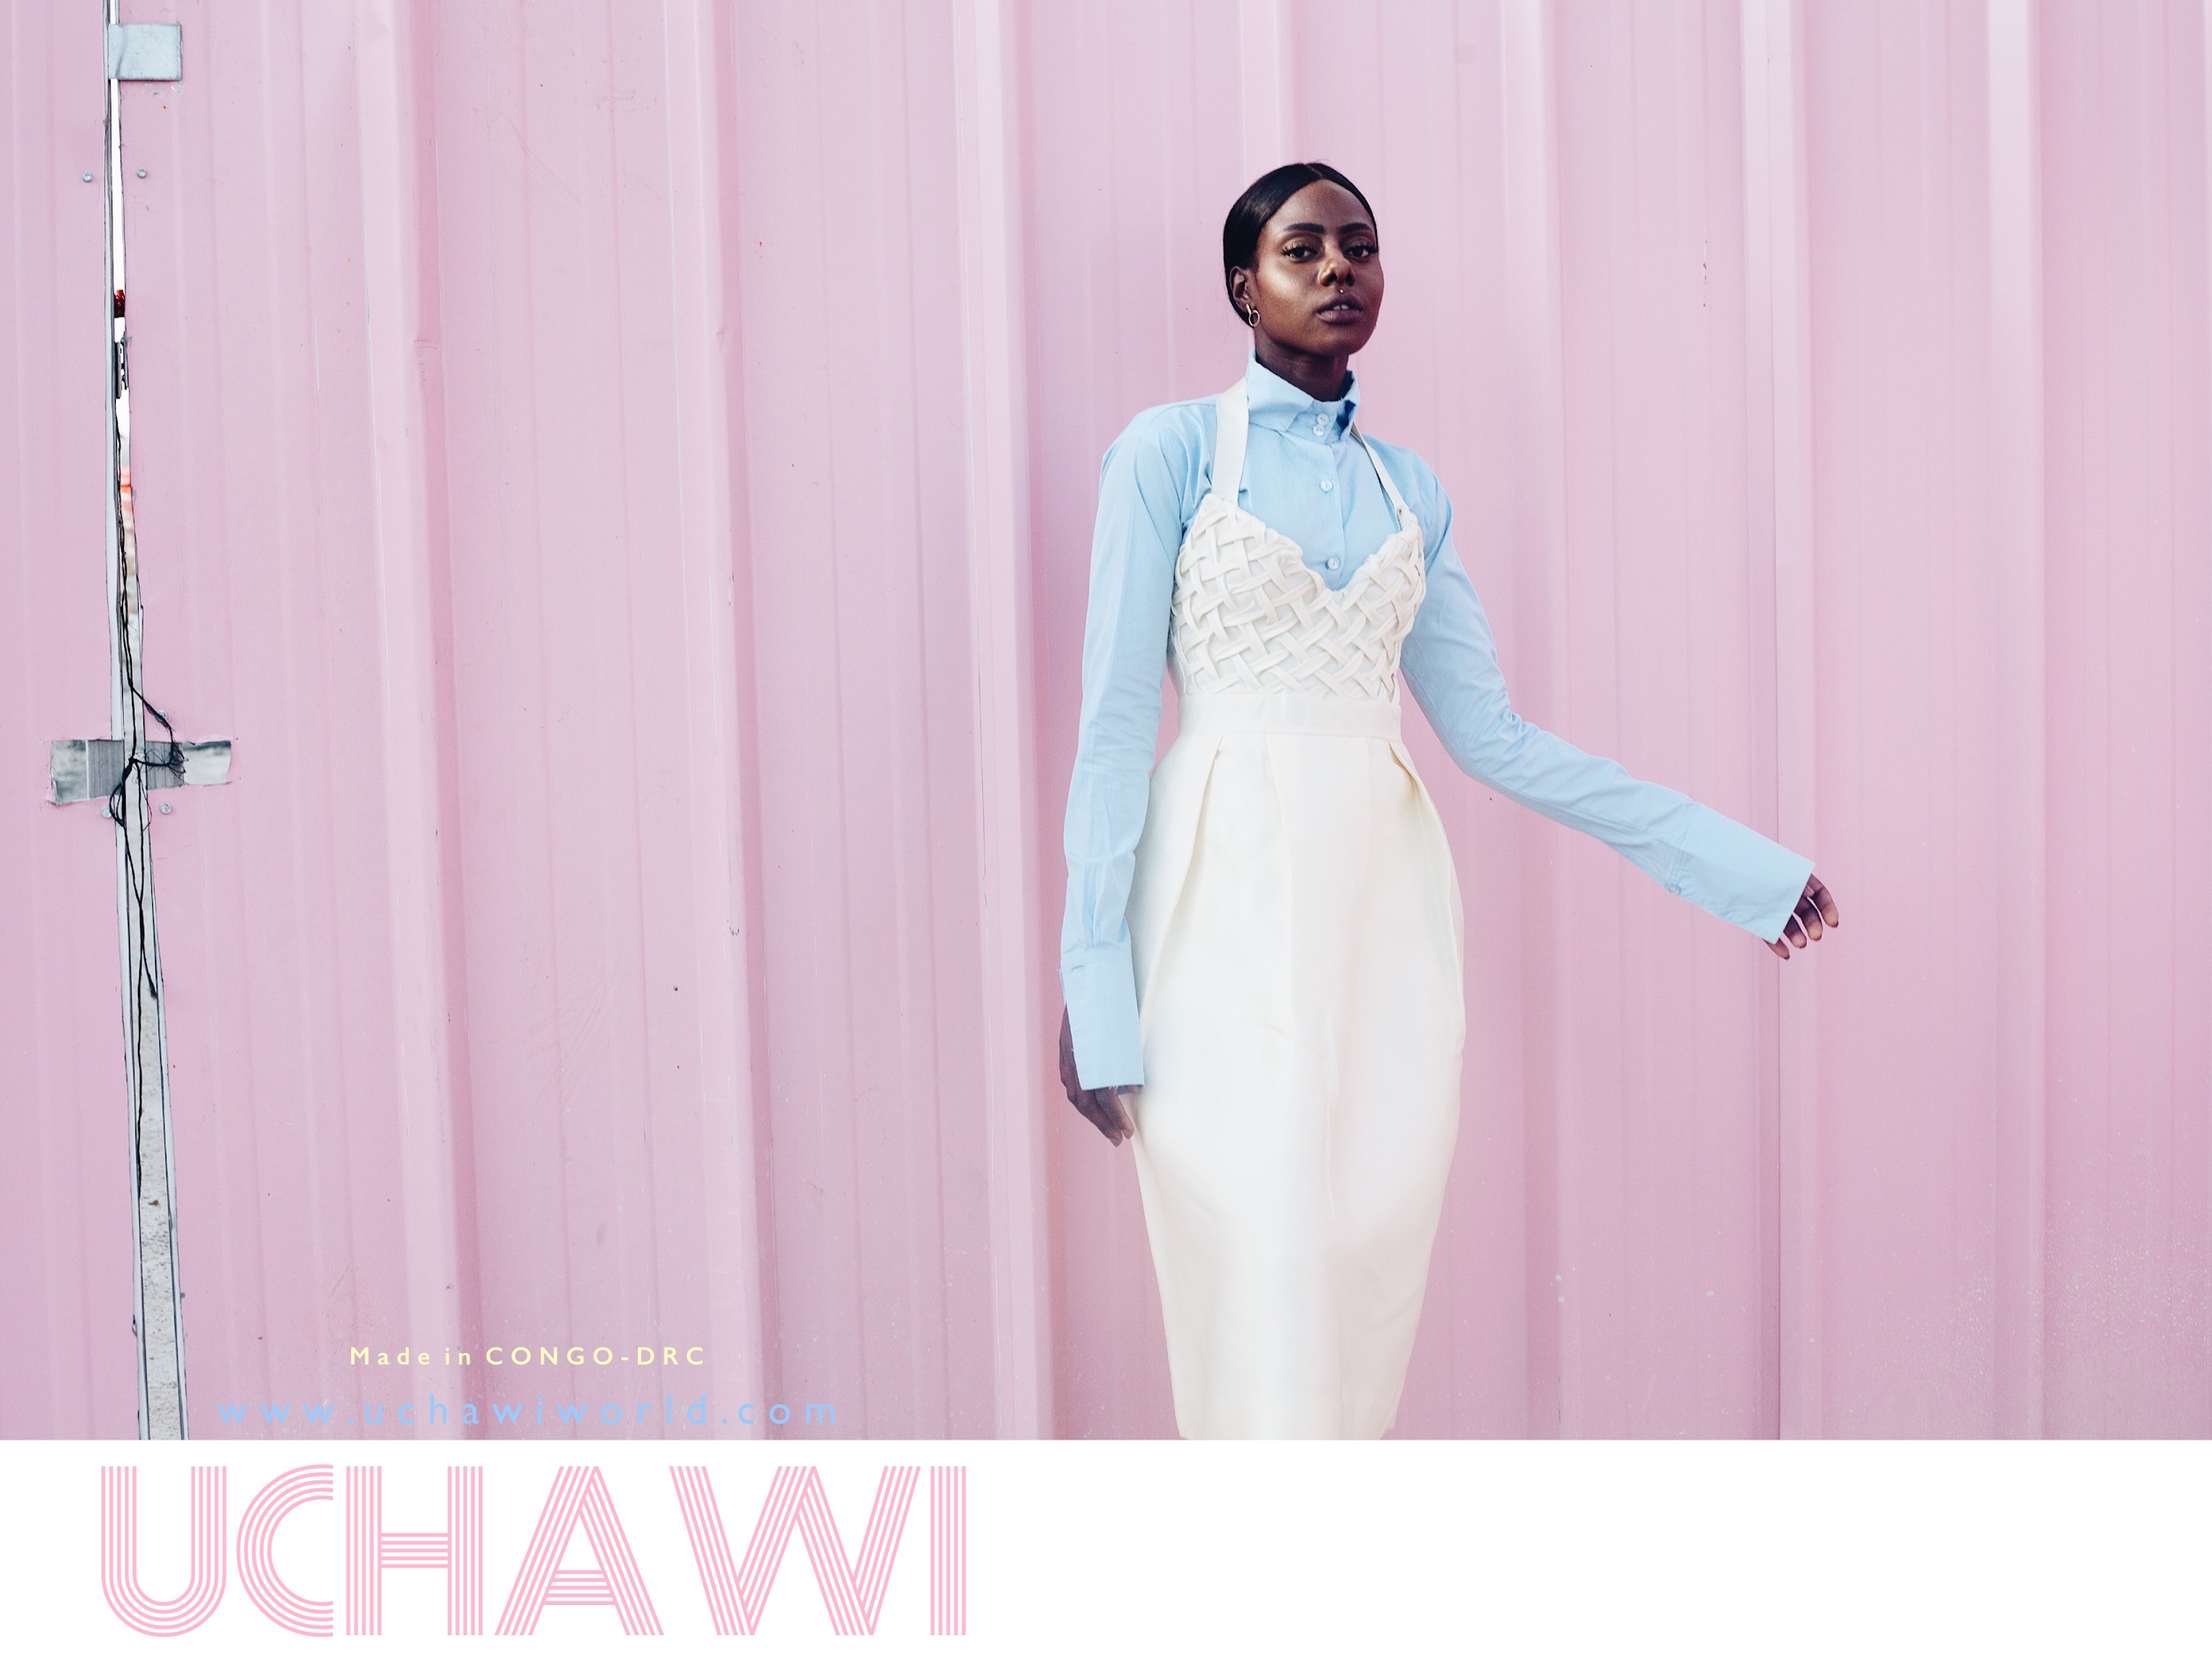 Photo from UCHAWI COLLECTION N.1 on Pinterest